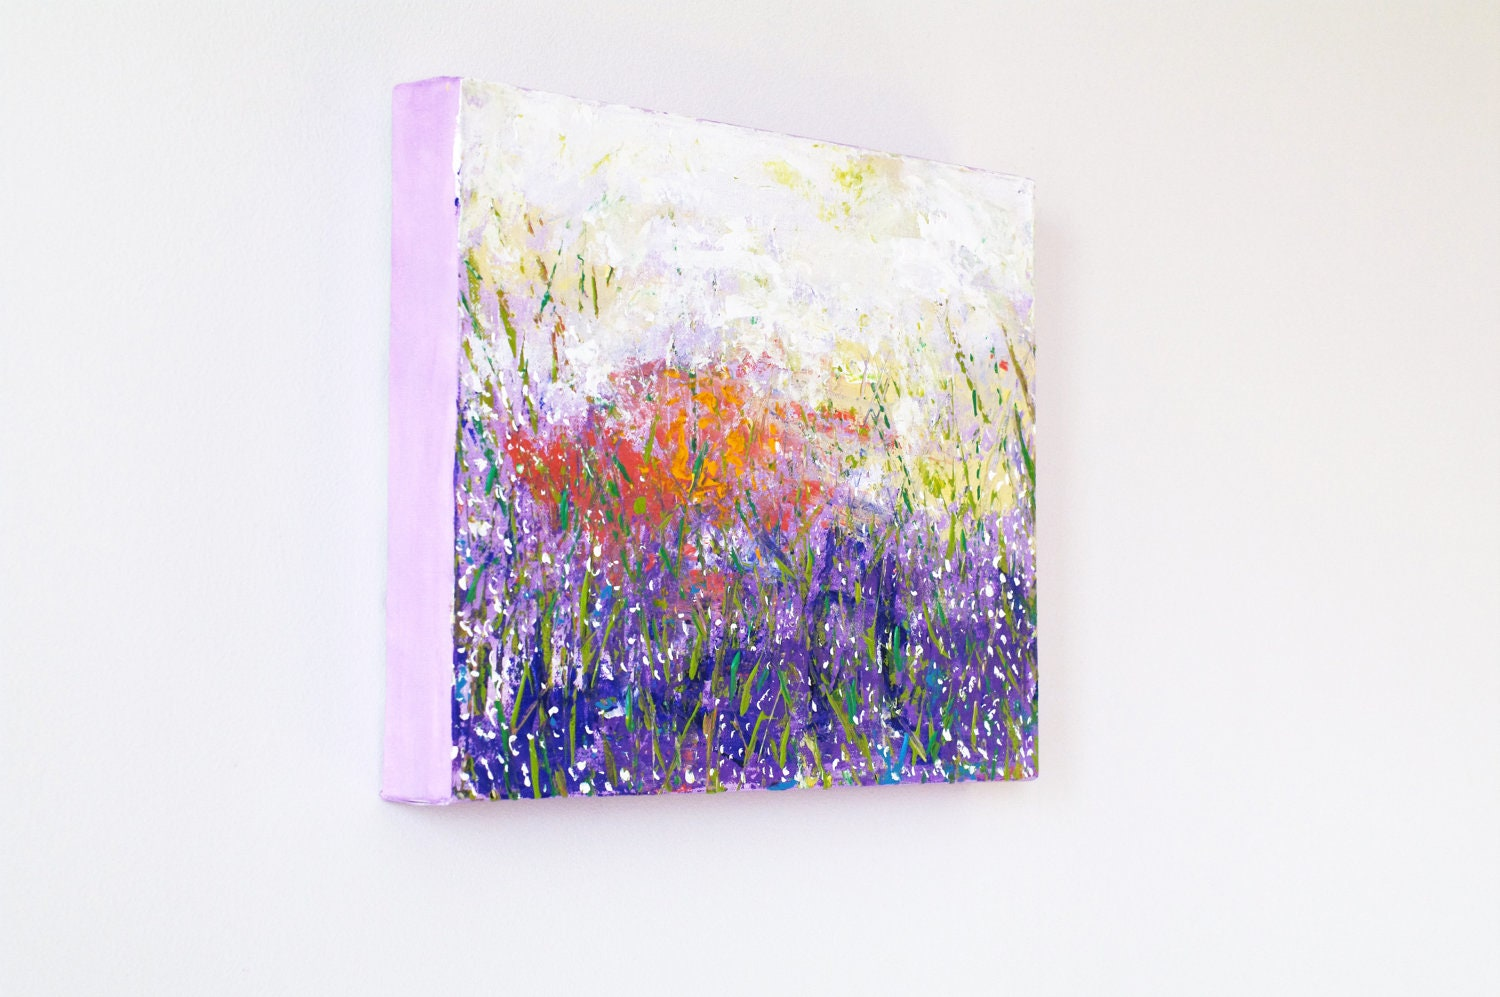 Acrylic abstract painting on canvas. Modern Landscape Nature Purple Lilac Pastel original art. Hand painted Home decor 12x16 - AstaArtwork